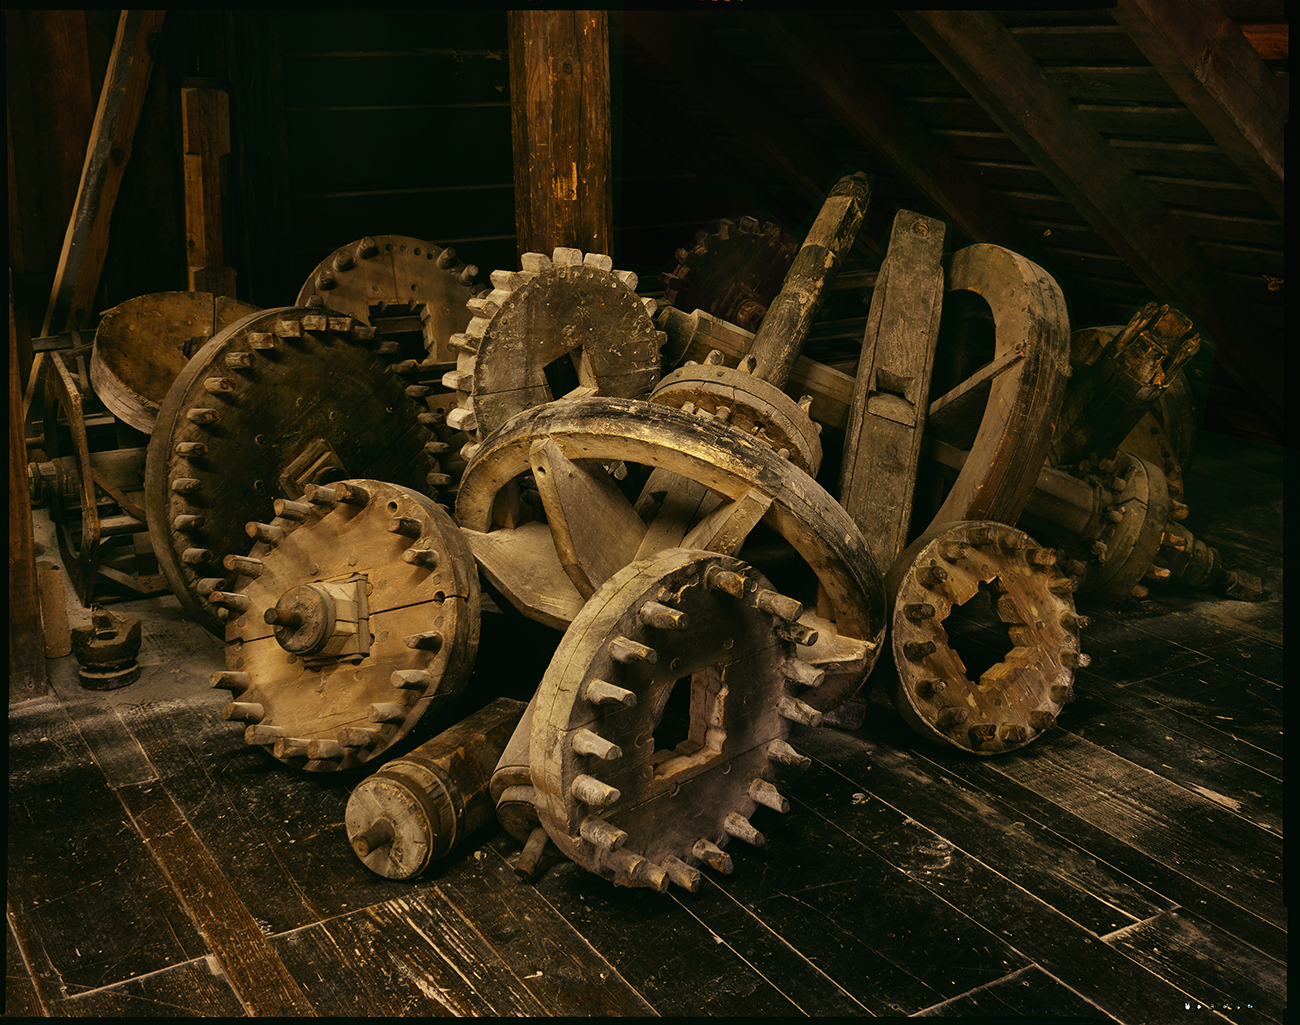 18th Century grinding gears, Grist Mill, Mount Vernon. Virginia, 2016